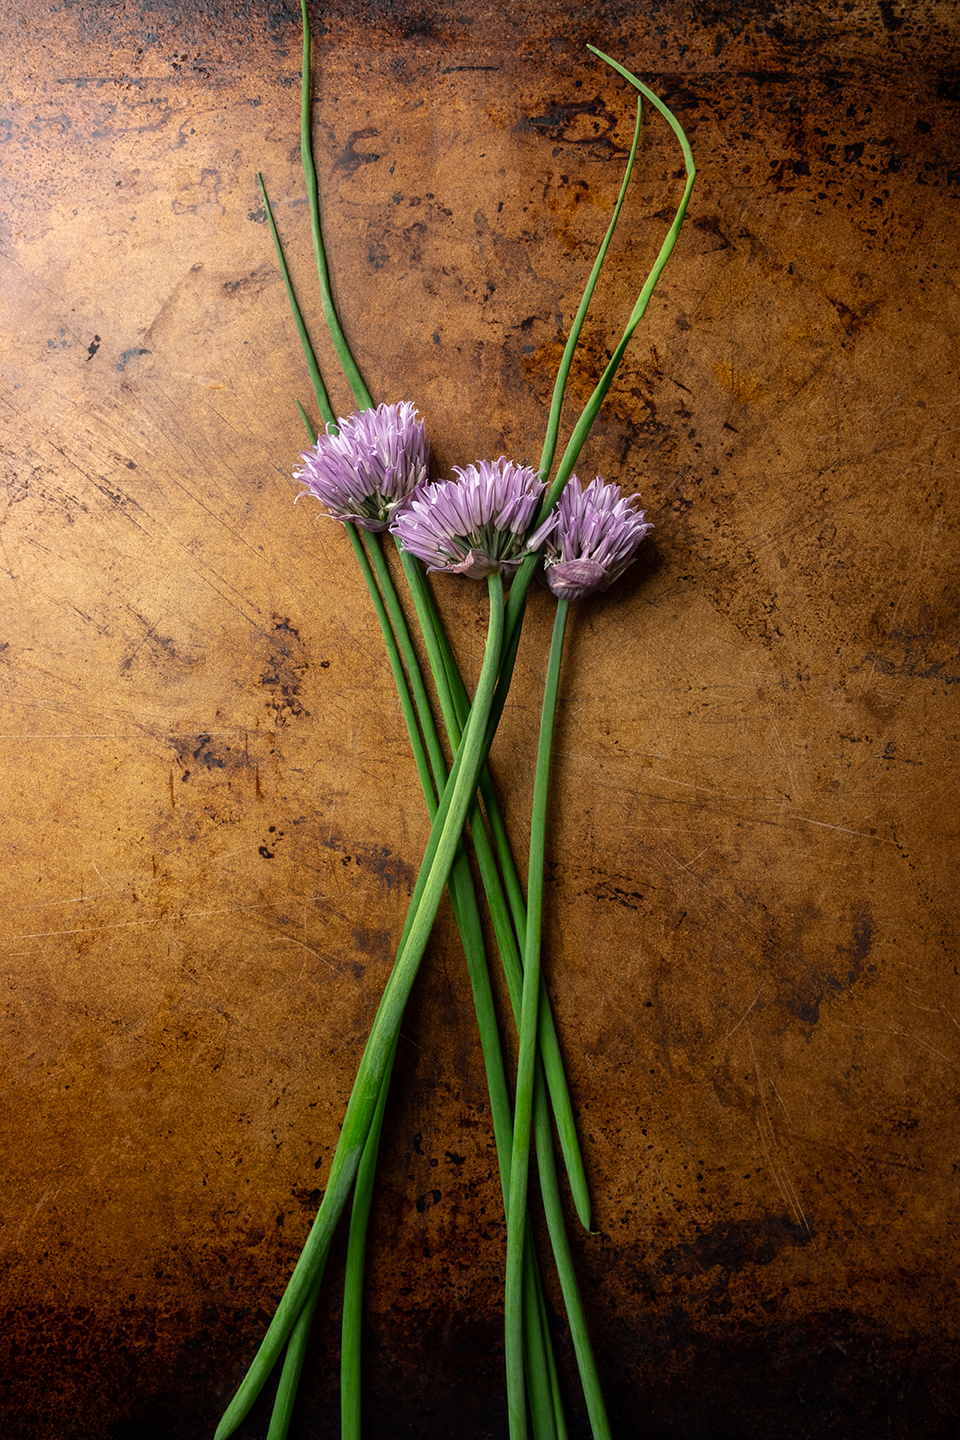 Chive and flowers on a rusty metal background.